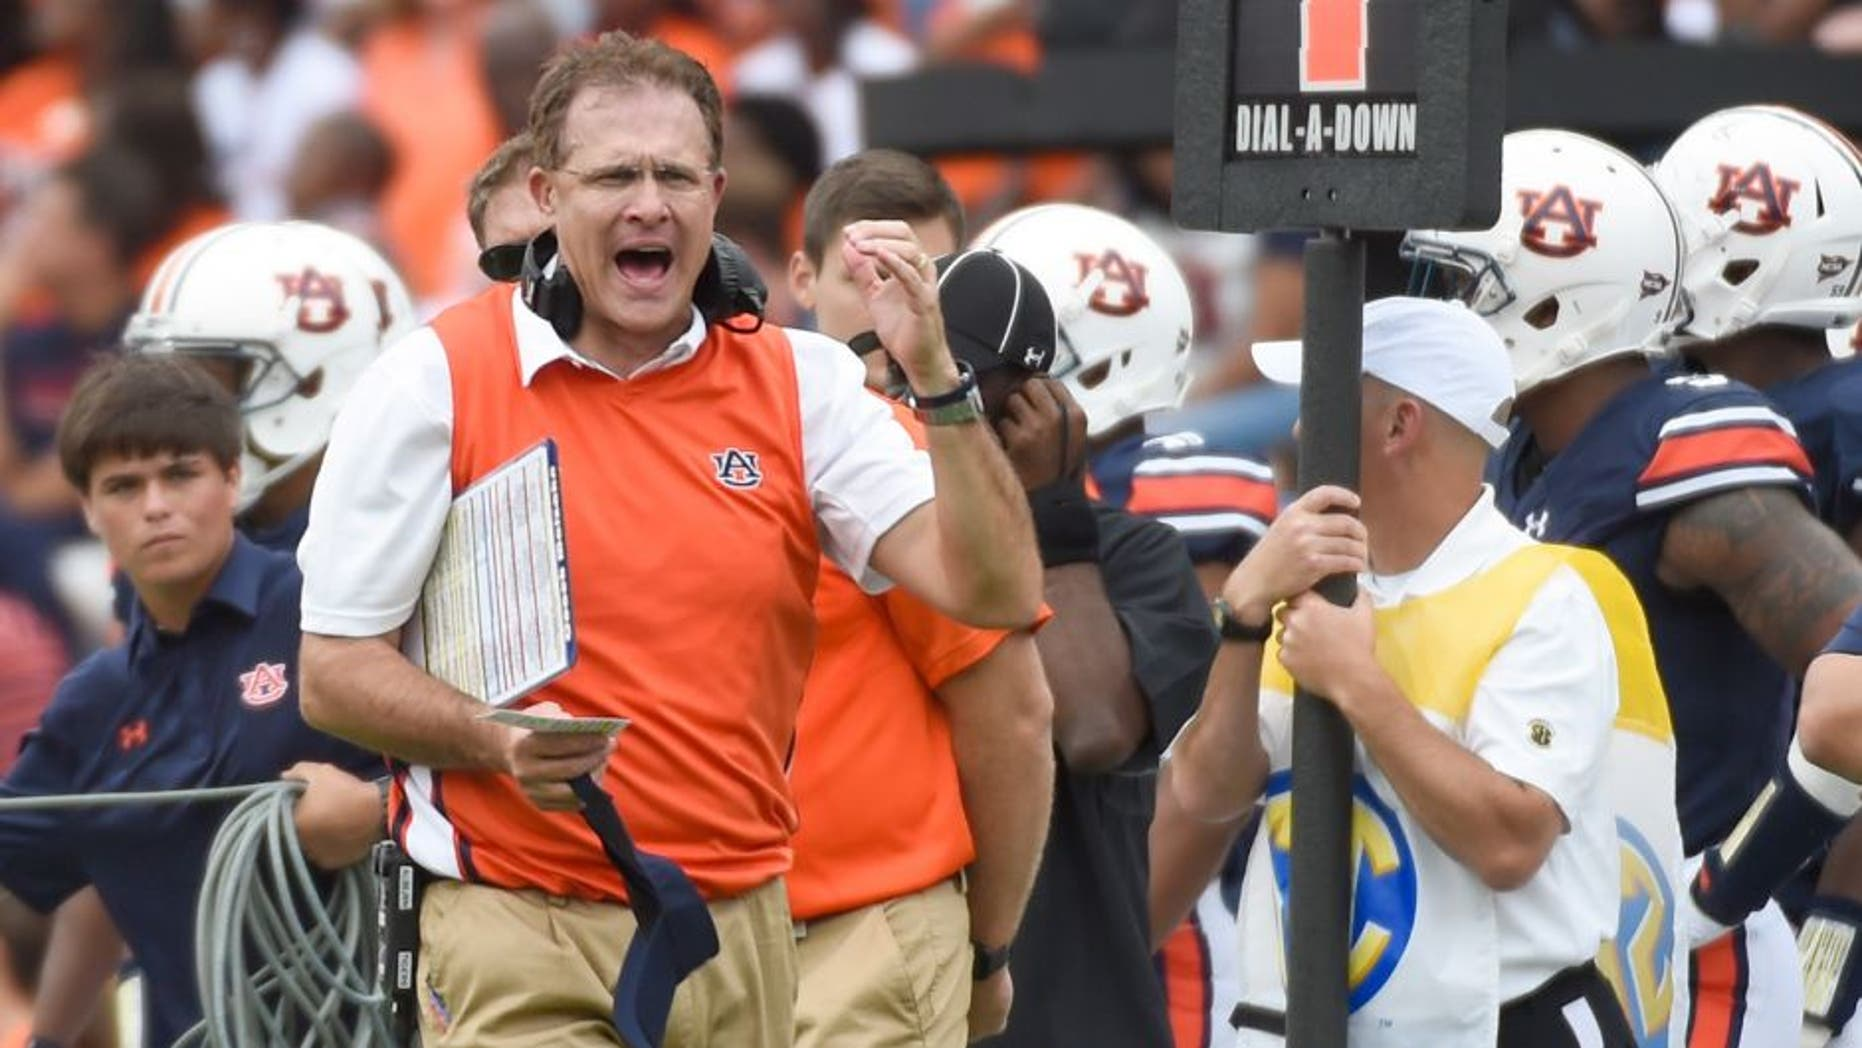 Sep 12, 2015; Auburn, AL, USA; Auburn Tigers head coach Gus Malzahn reacts during the second quarter against the Jacksonville State Gamecocks at Jordan Hare Stadium. Mandatory Credit: Shanna Lockwood-USA TODAY Sports